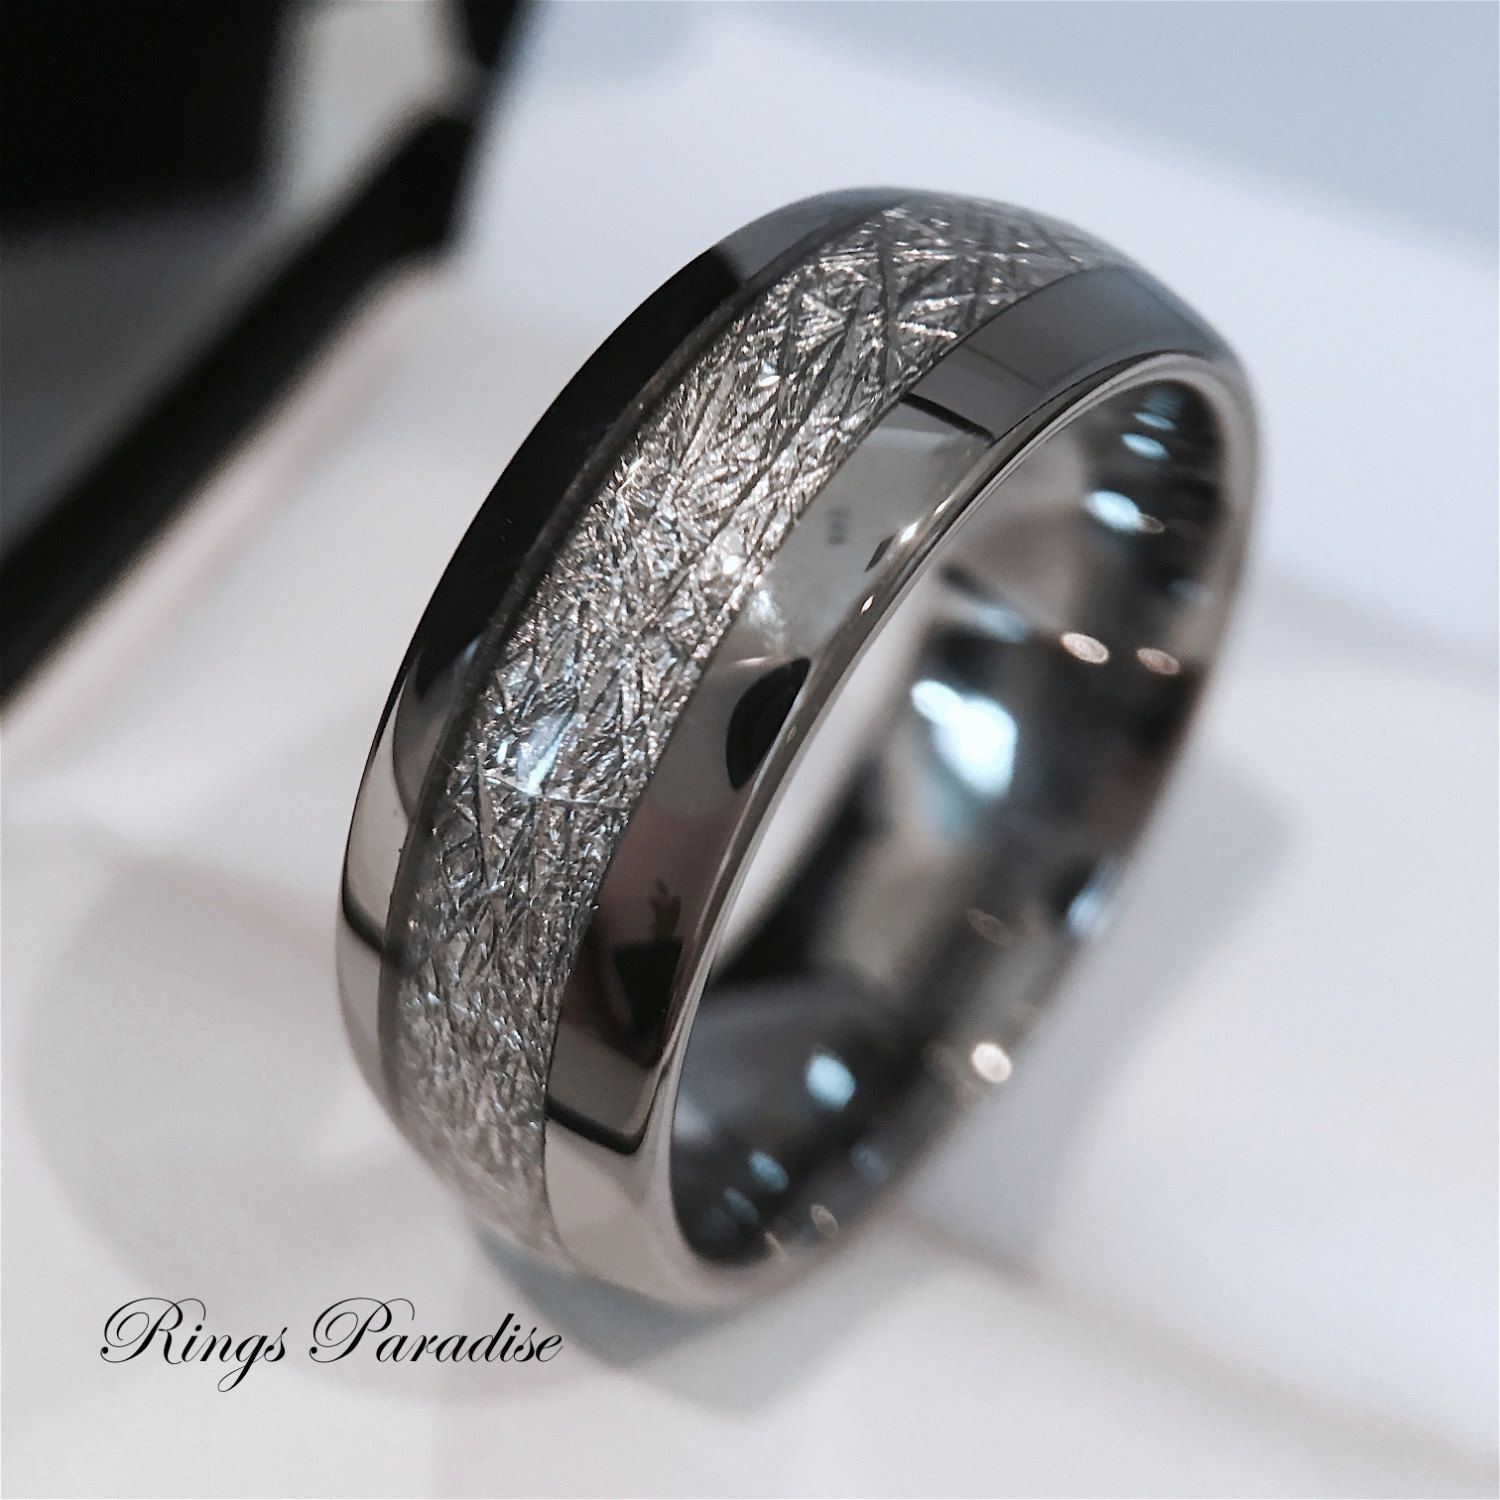 49f931dd6 Tungsten Wedding Band, His and Her Promise Ring, Imitated Meteorite ...